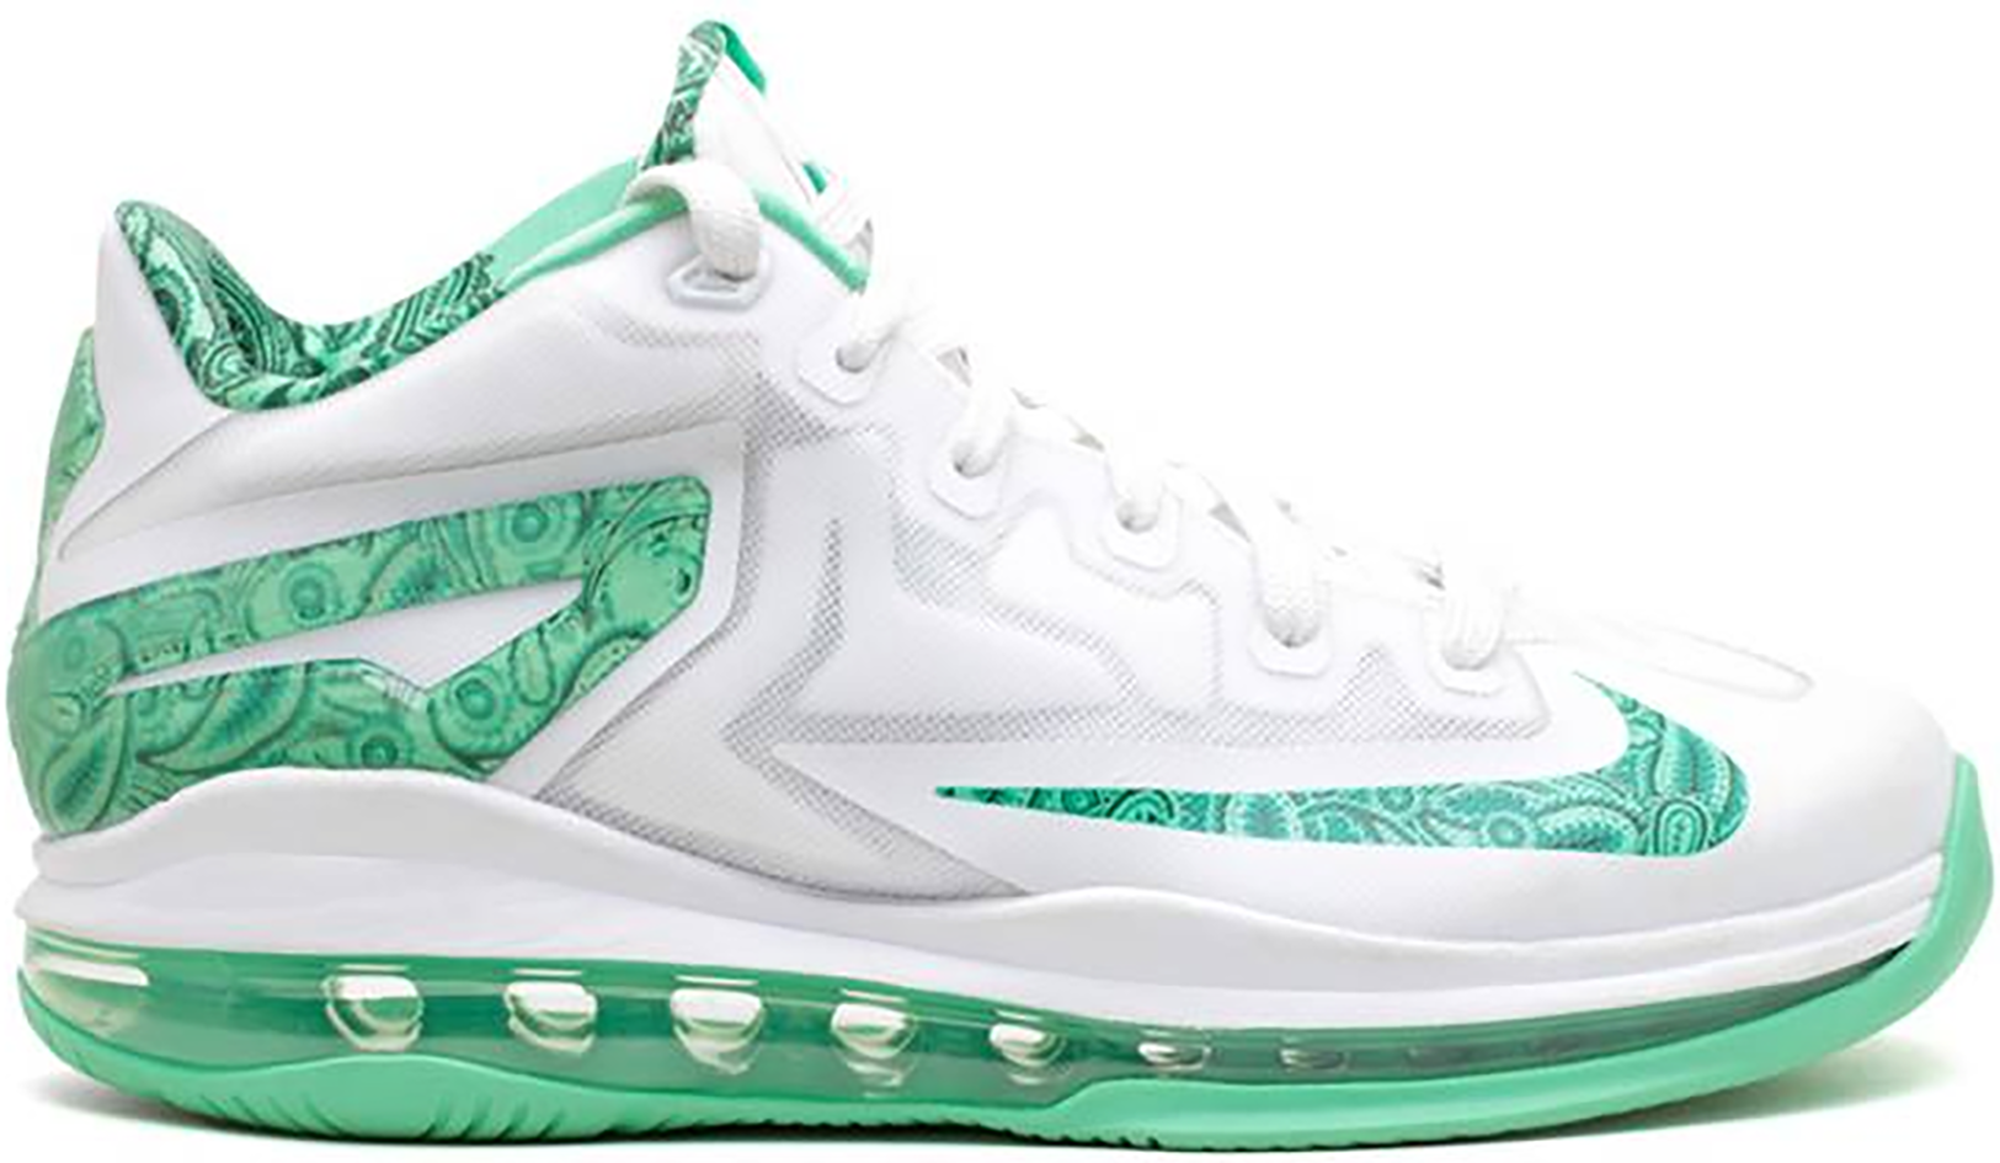 Nike LeBron 11 Low Easter (GS) - 644534-100